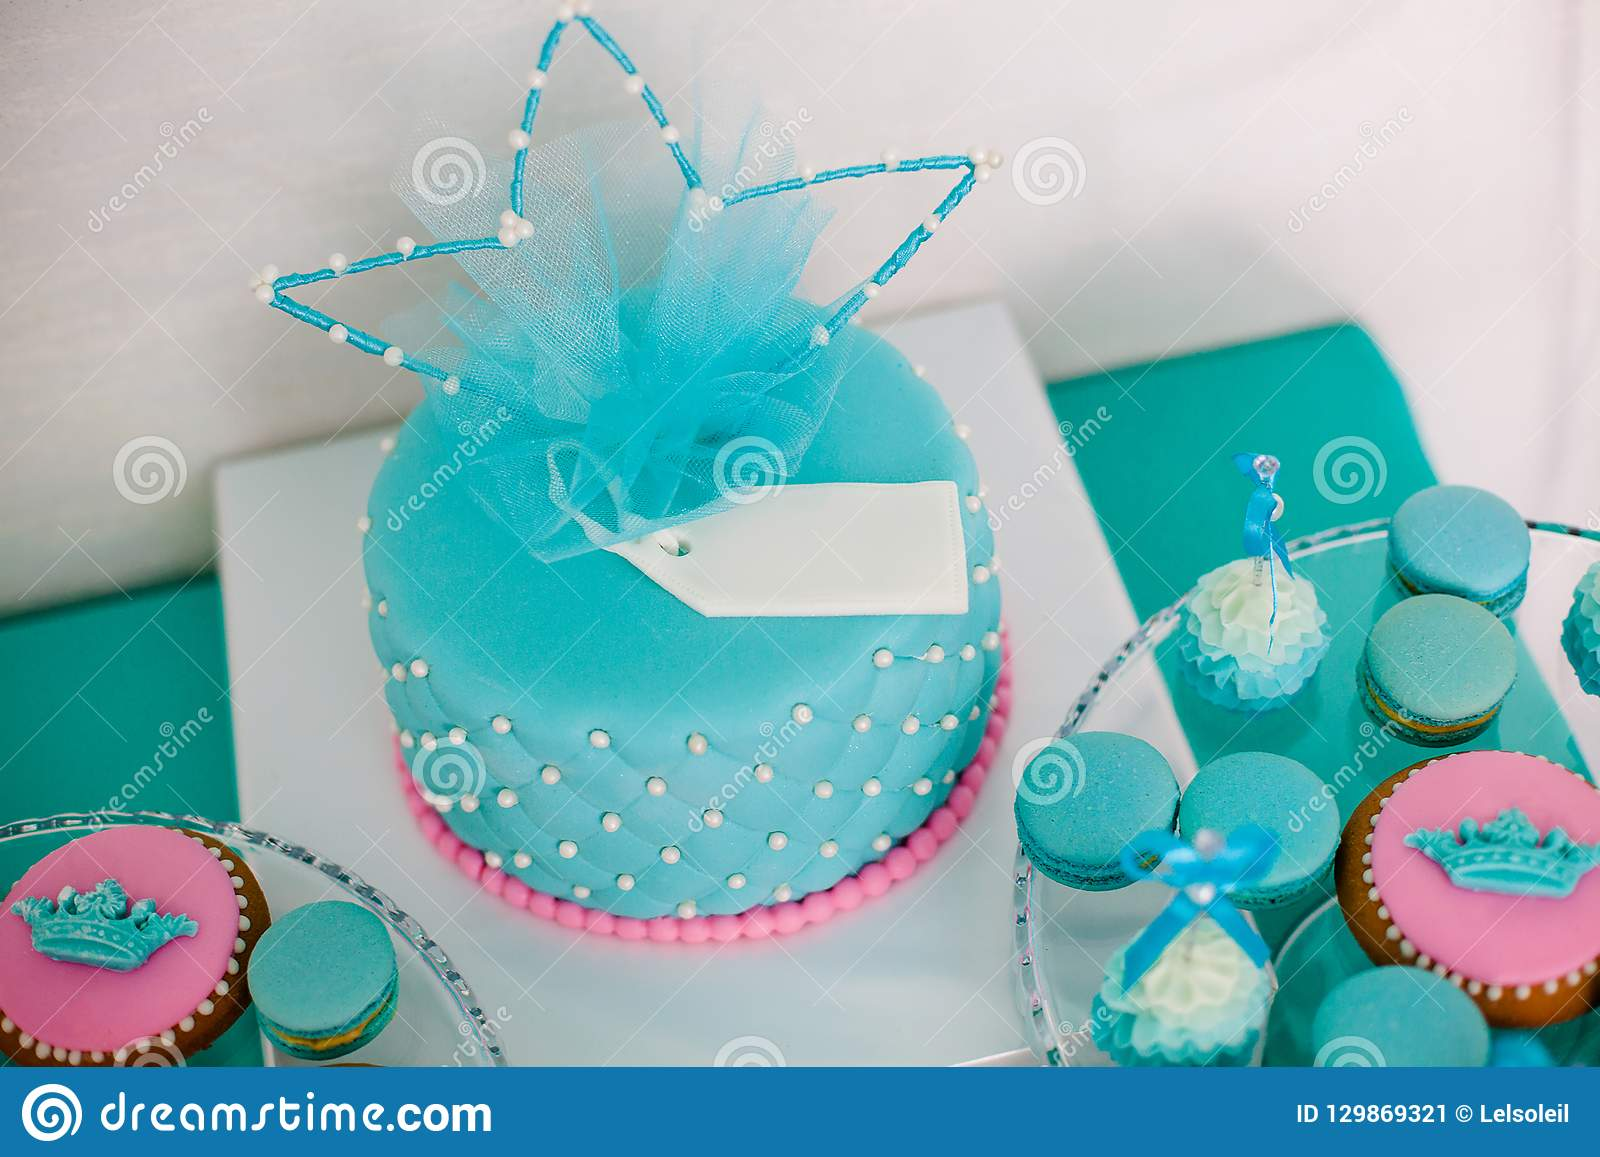 Blue And Pink Birthday Cake With Pearls Big Crown For Little Baby Girl Decorations Party